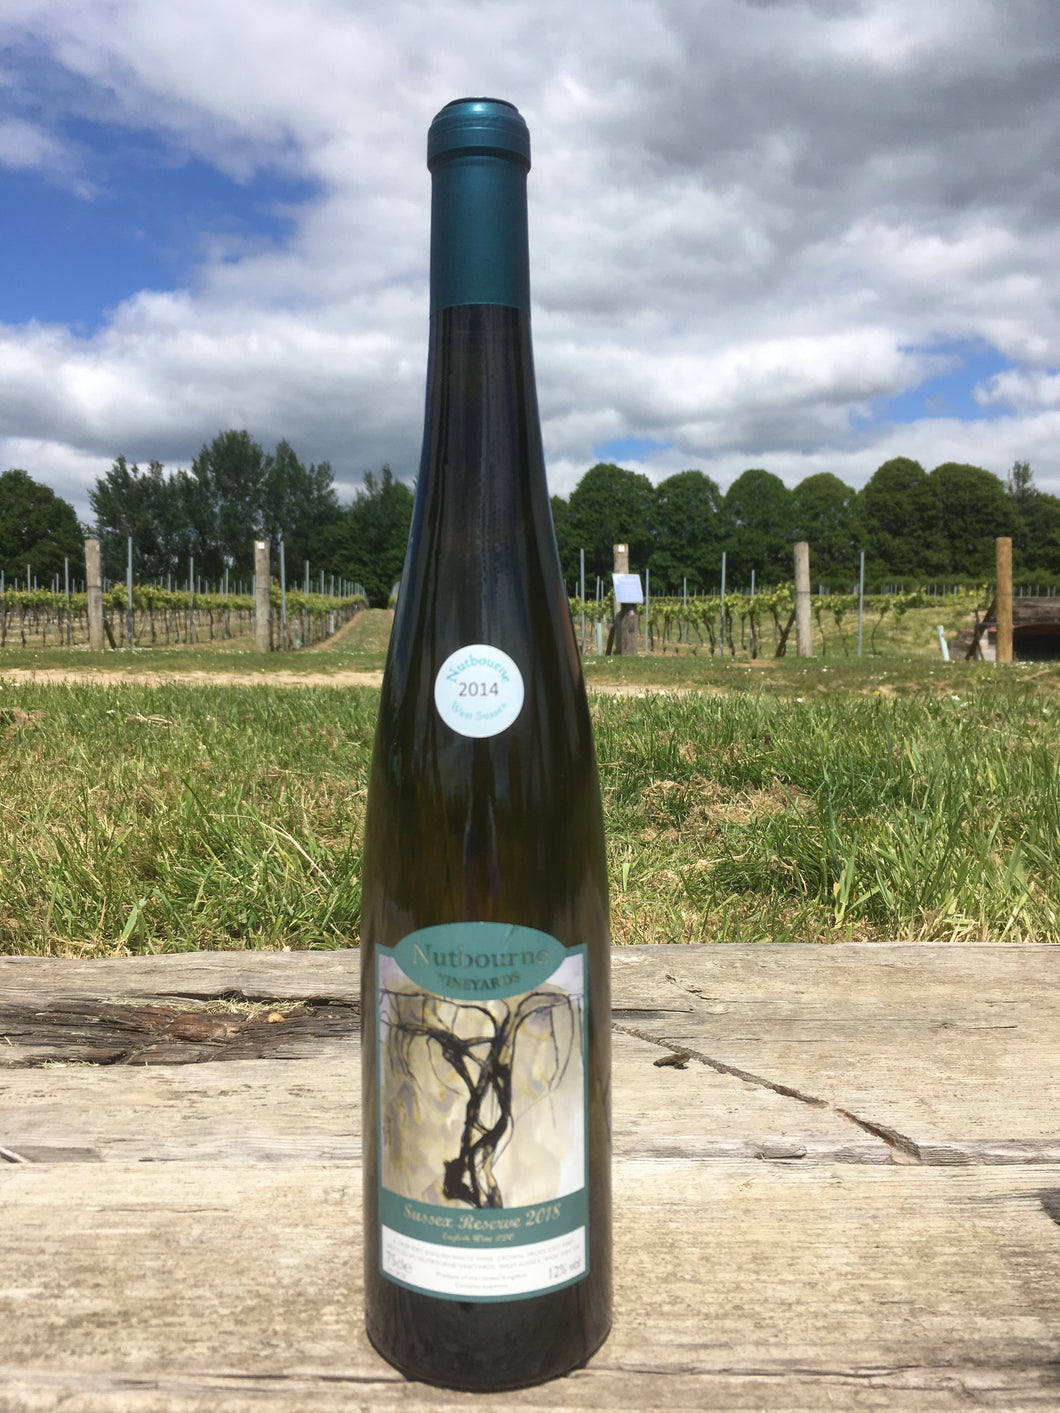 Sussex Reserve 2014 vintage white wine